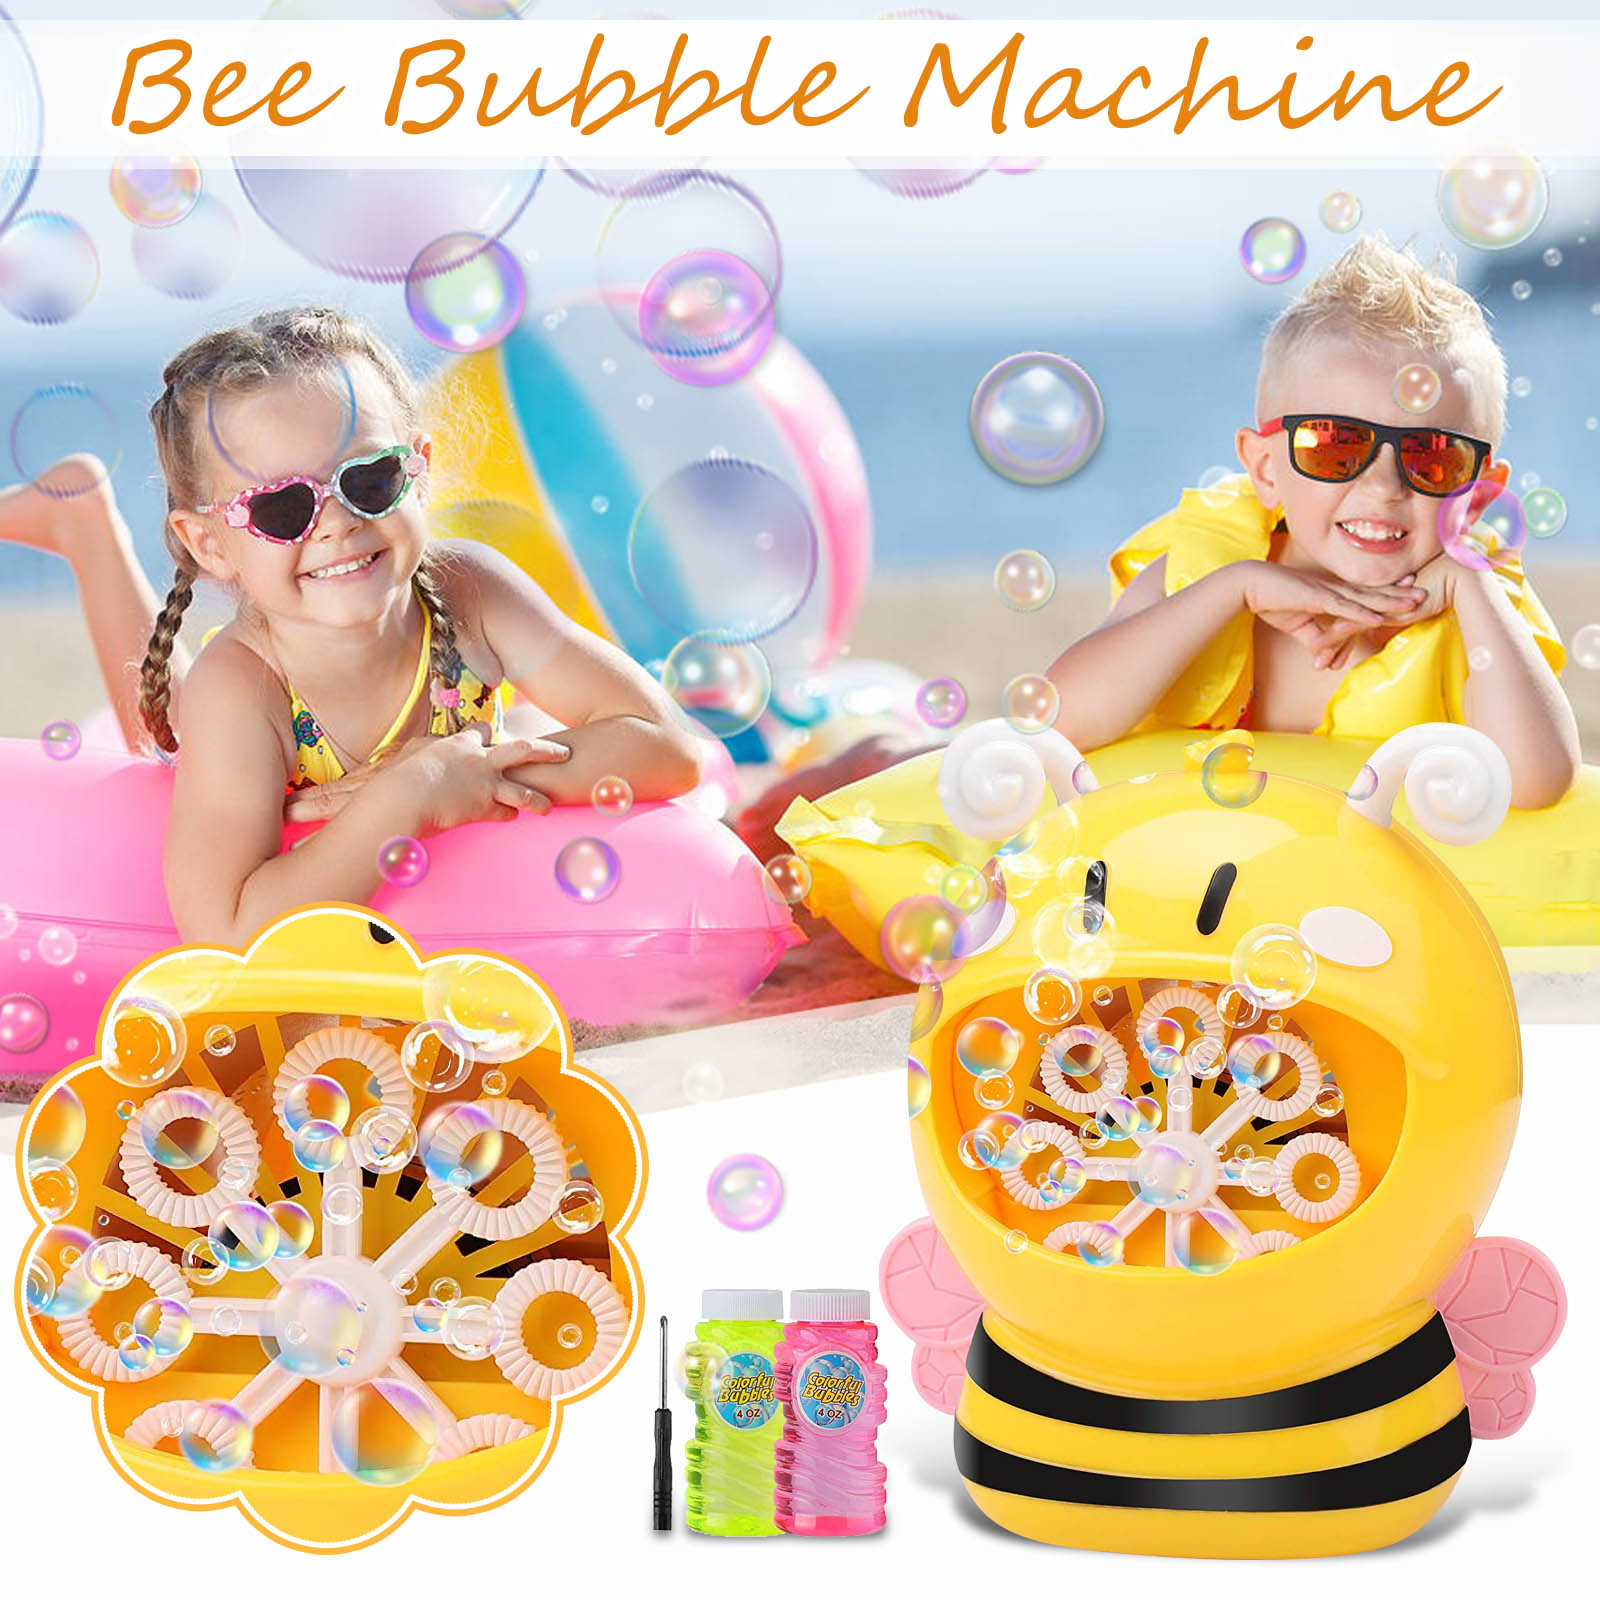 Outdoor Bee Machine Crabs&Frog Music Kids Bath Toy Bathtub Soap Automatic Bubble Maker Baby Bathroom Toy for Children